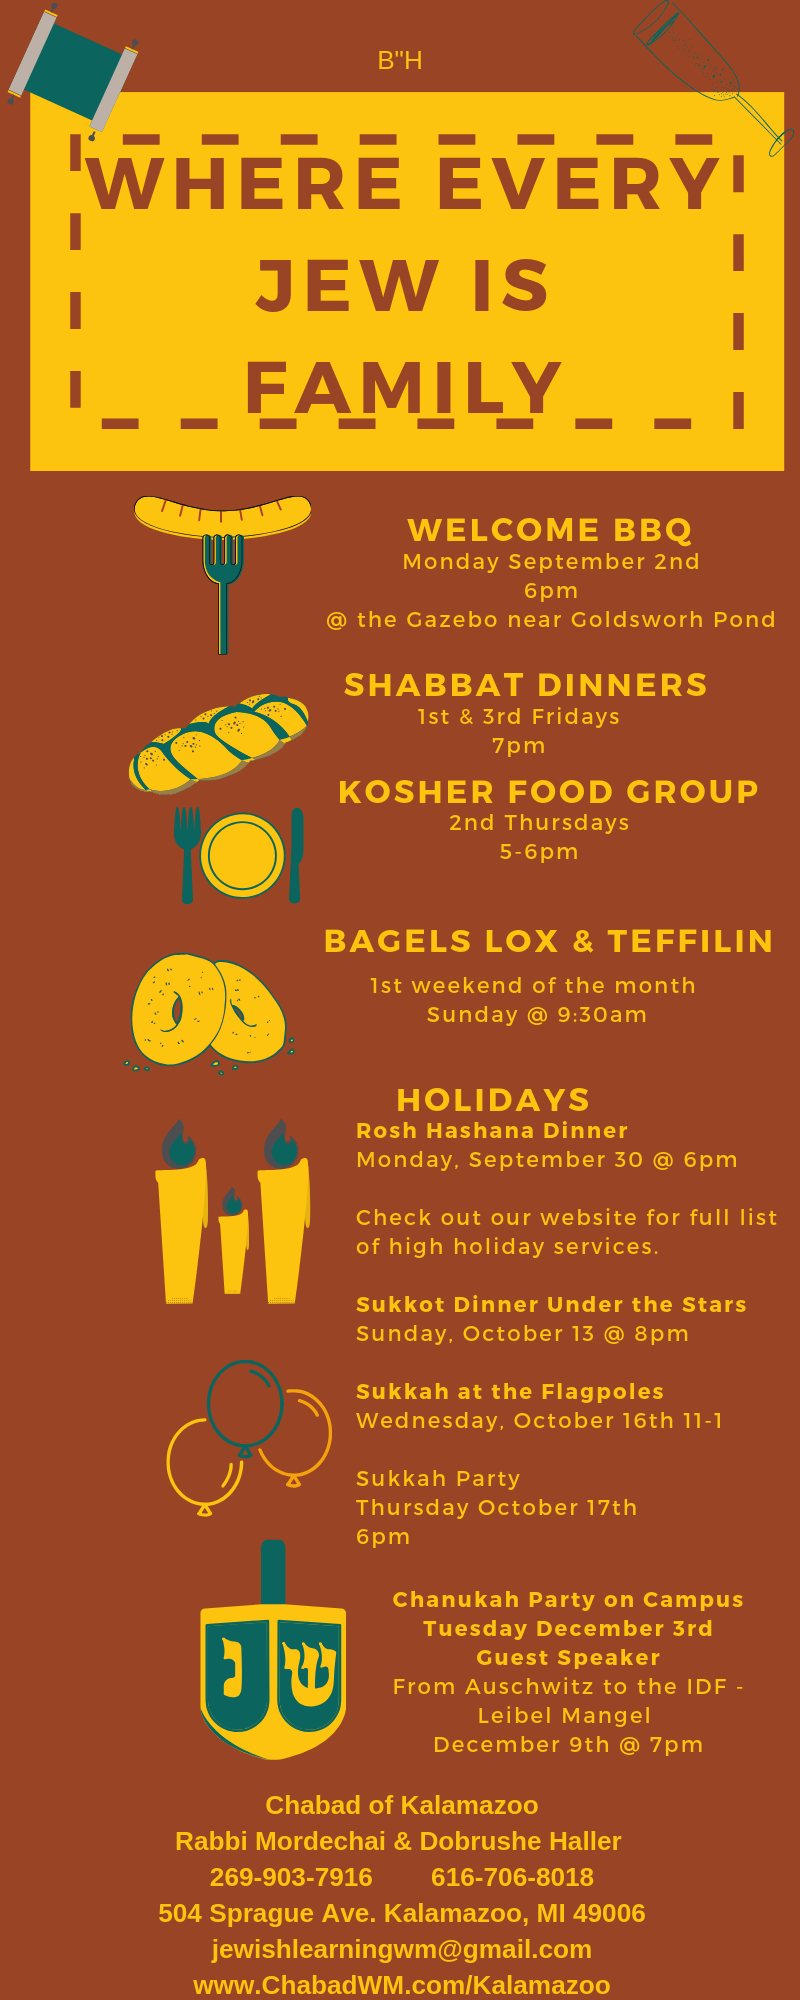 Copy of Chabad bronco bash handout 5780.png